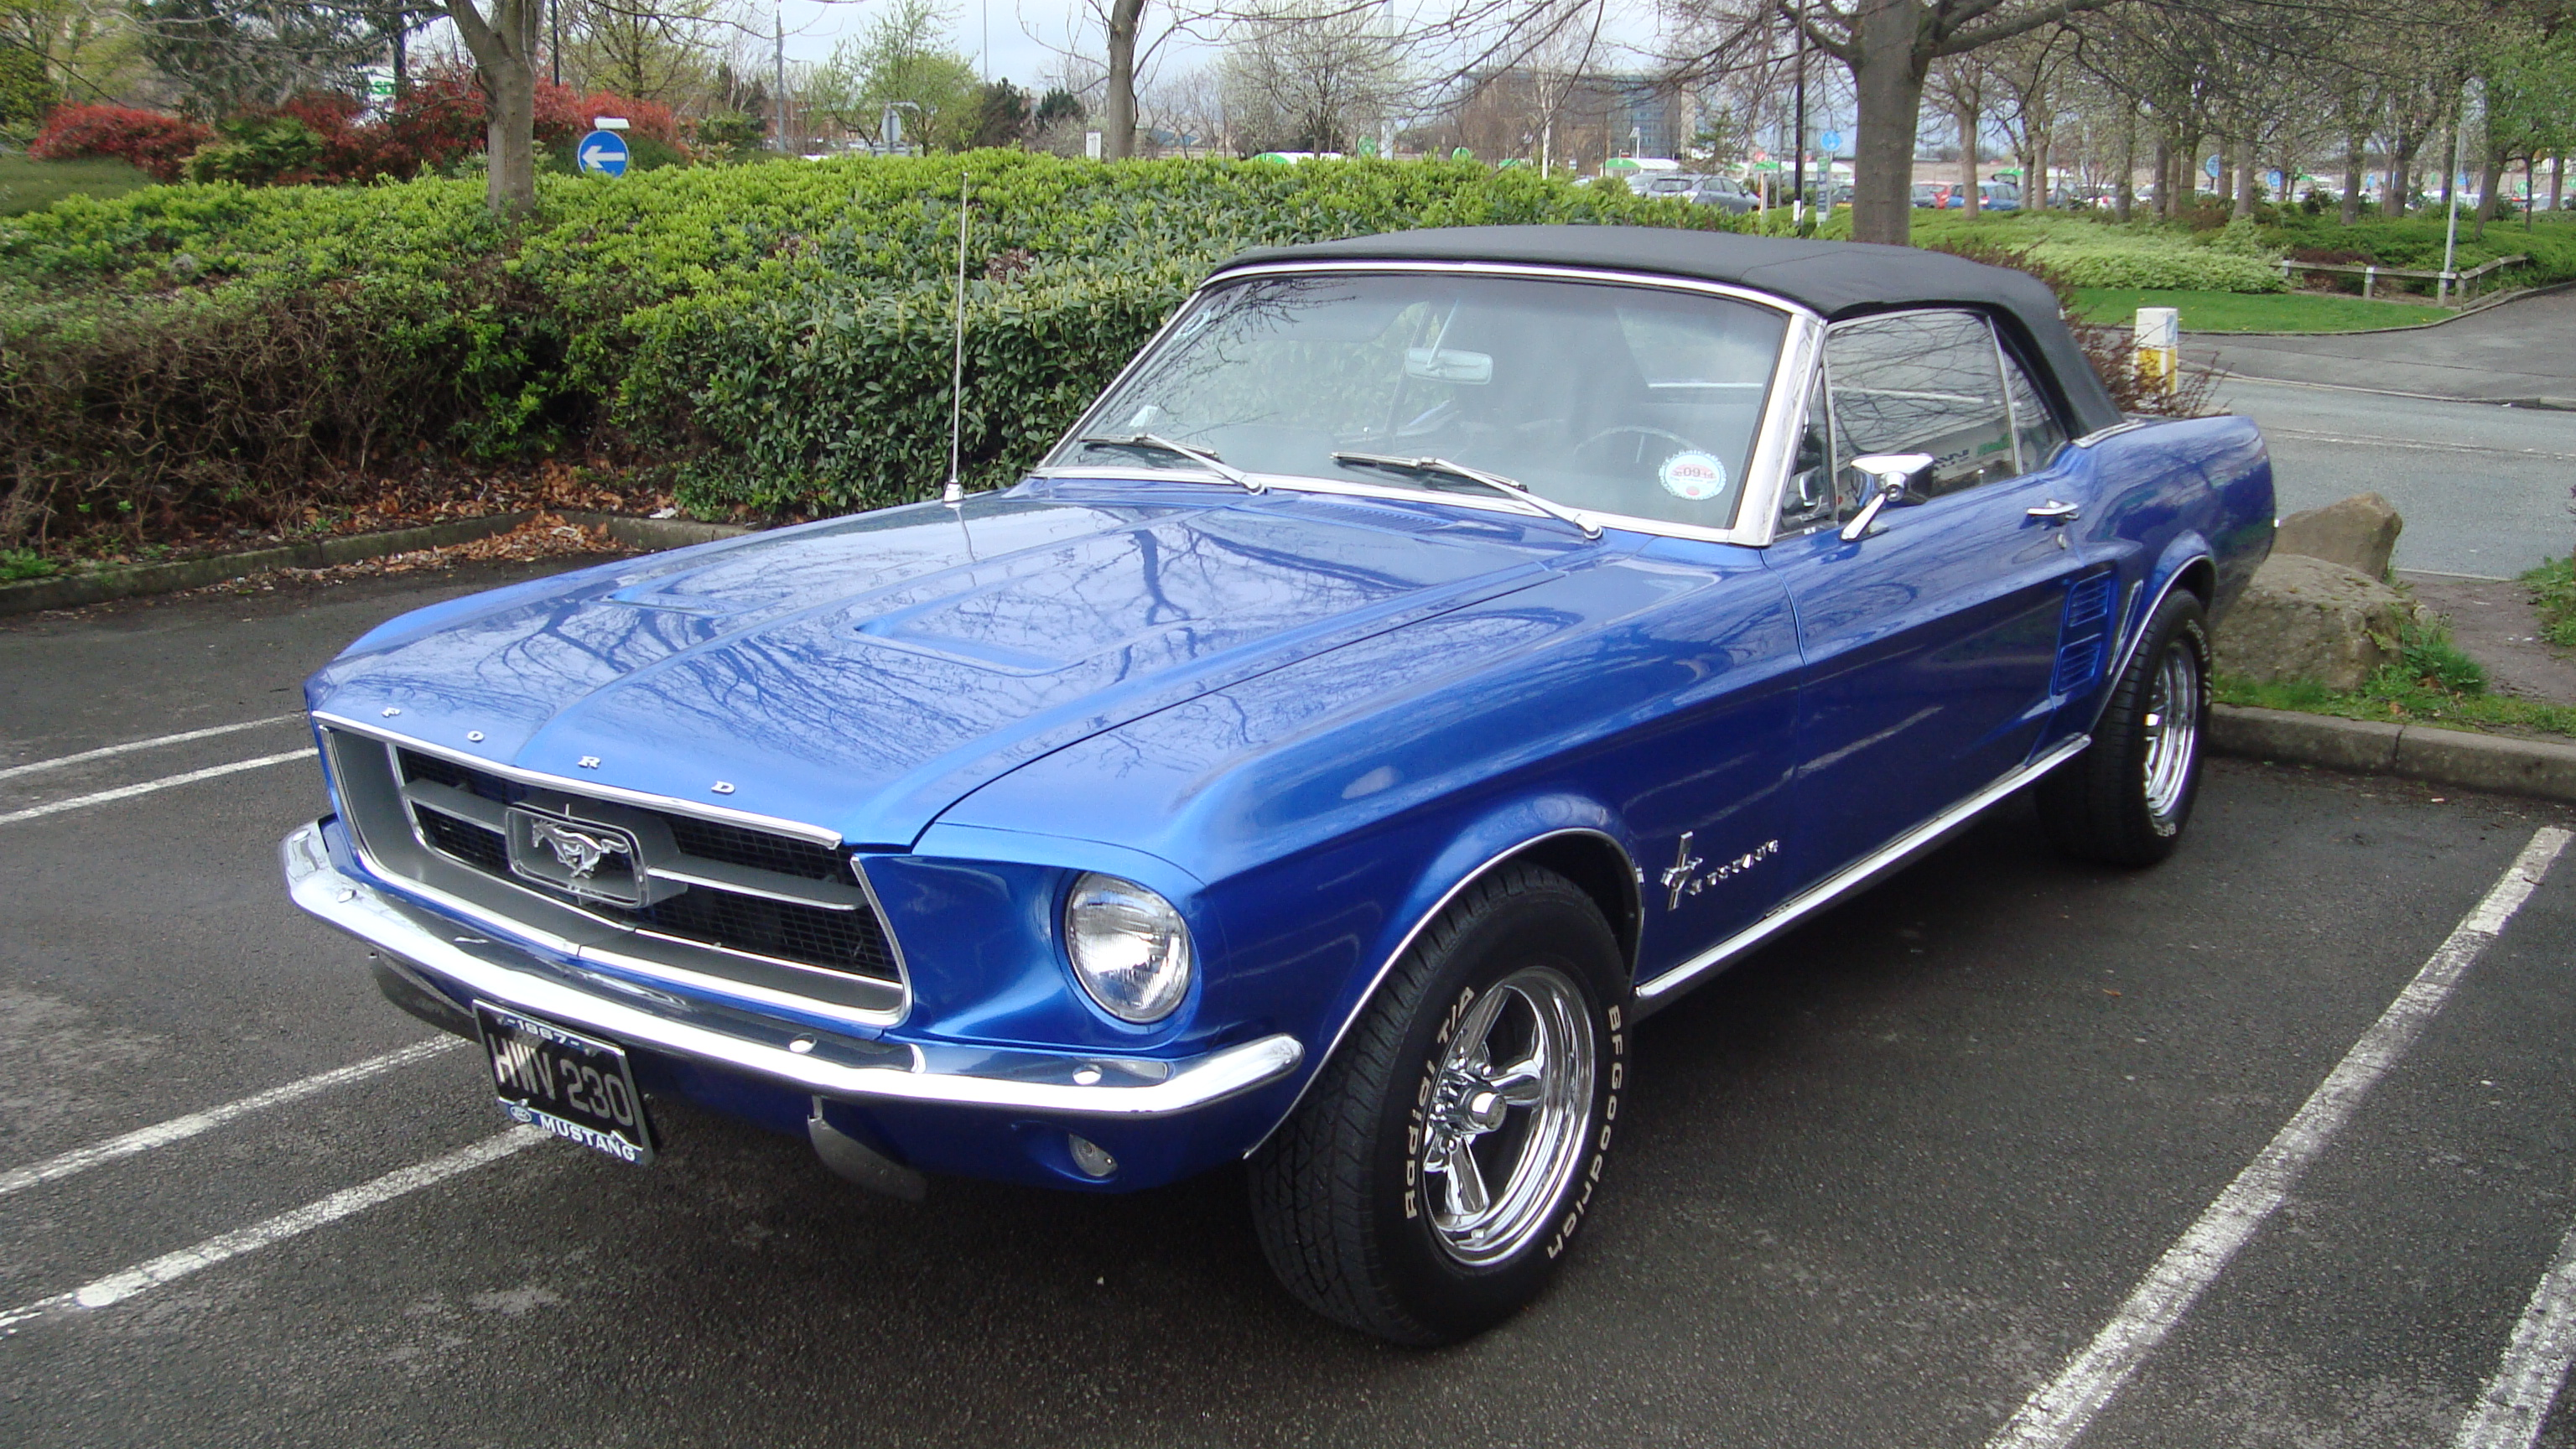 file1967 ford mustang convertible 13667785565jpg